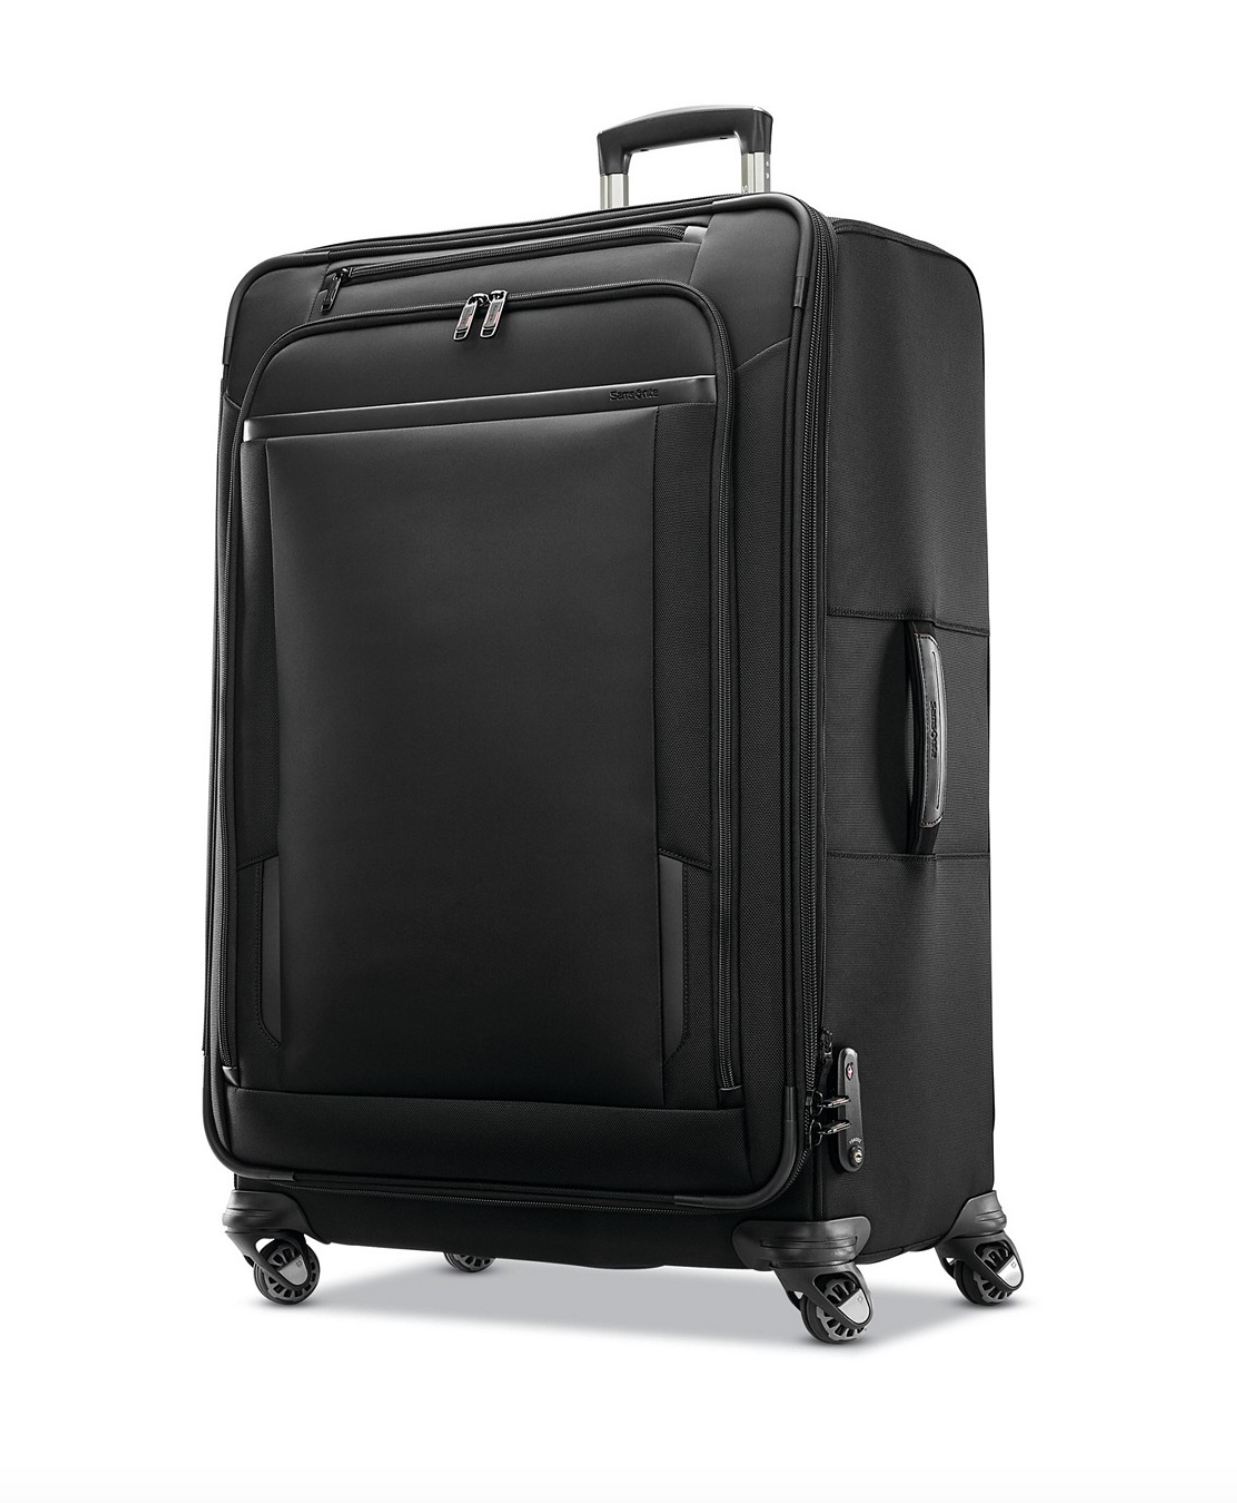 Samsonite Pro travel 29-inch expandable spinner